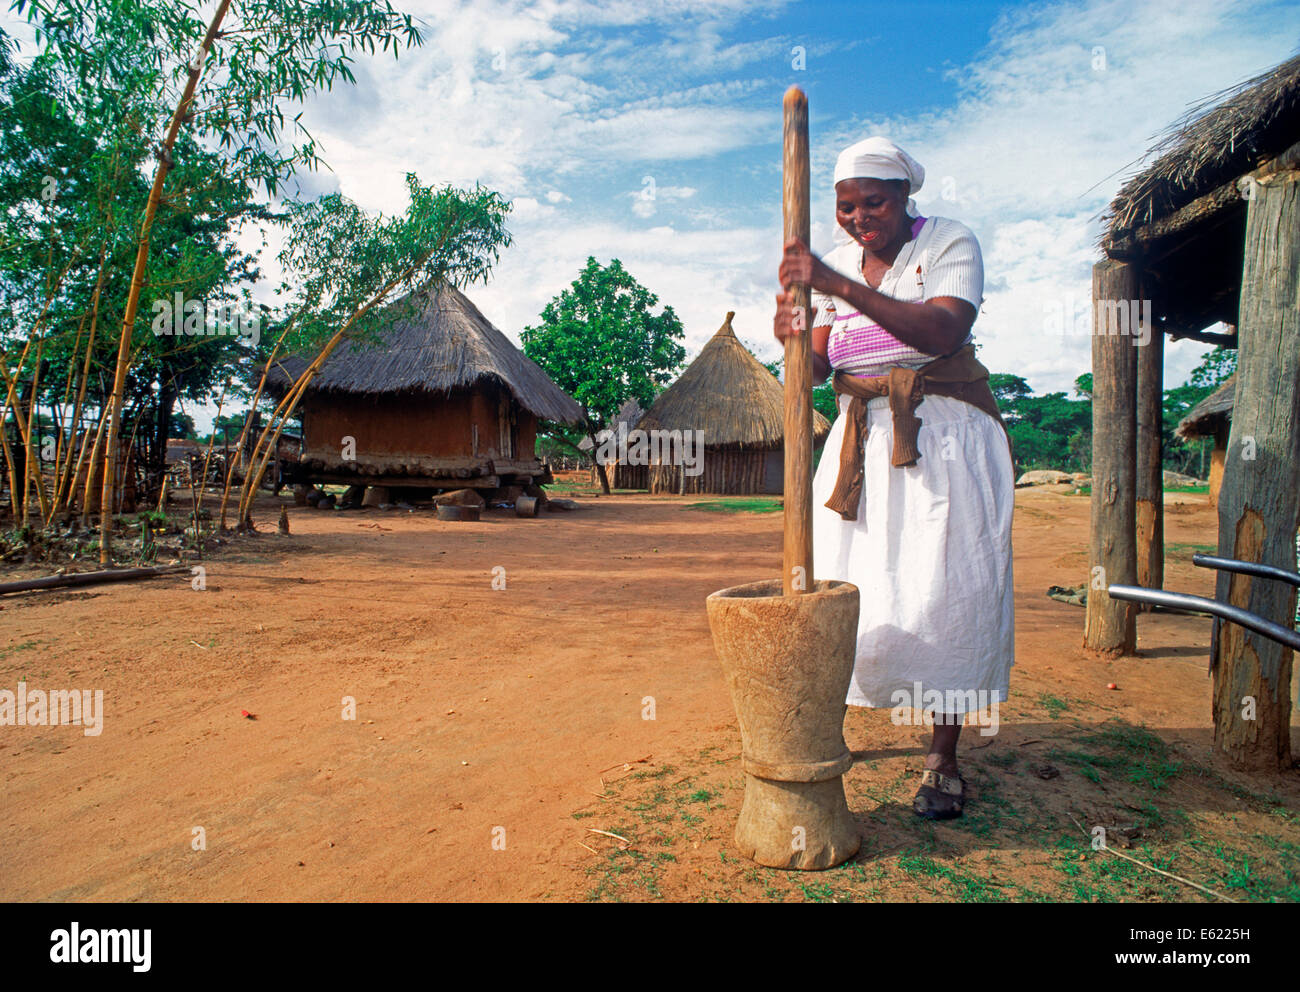 Woman pounding maize for cornbread in Zimbabwe village - Stock Image